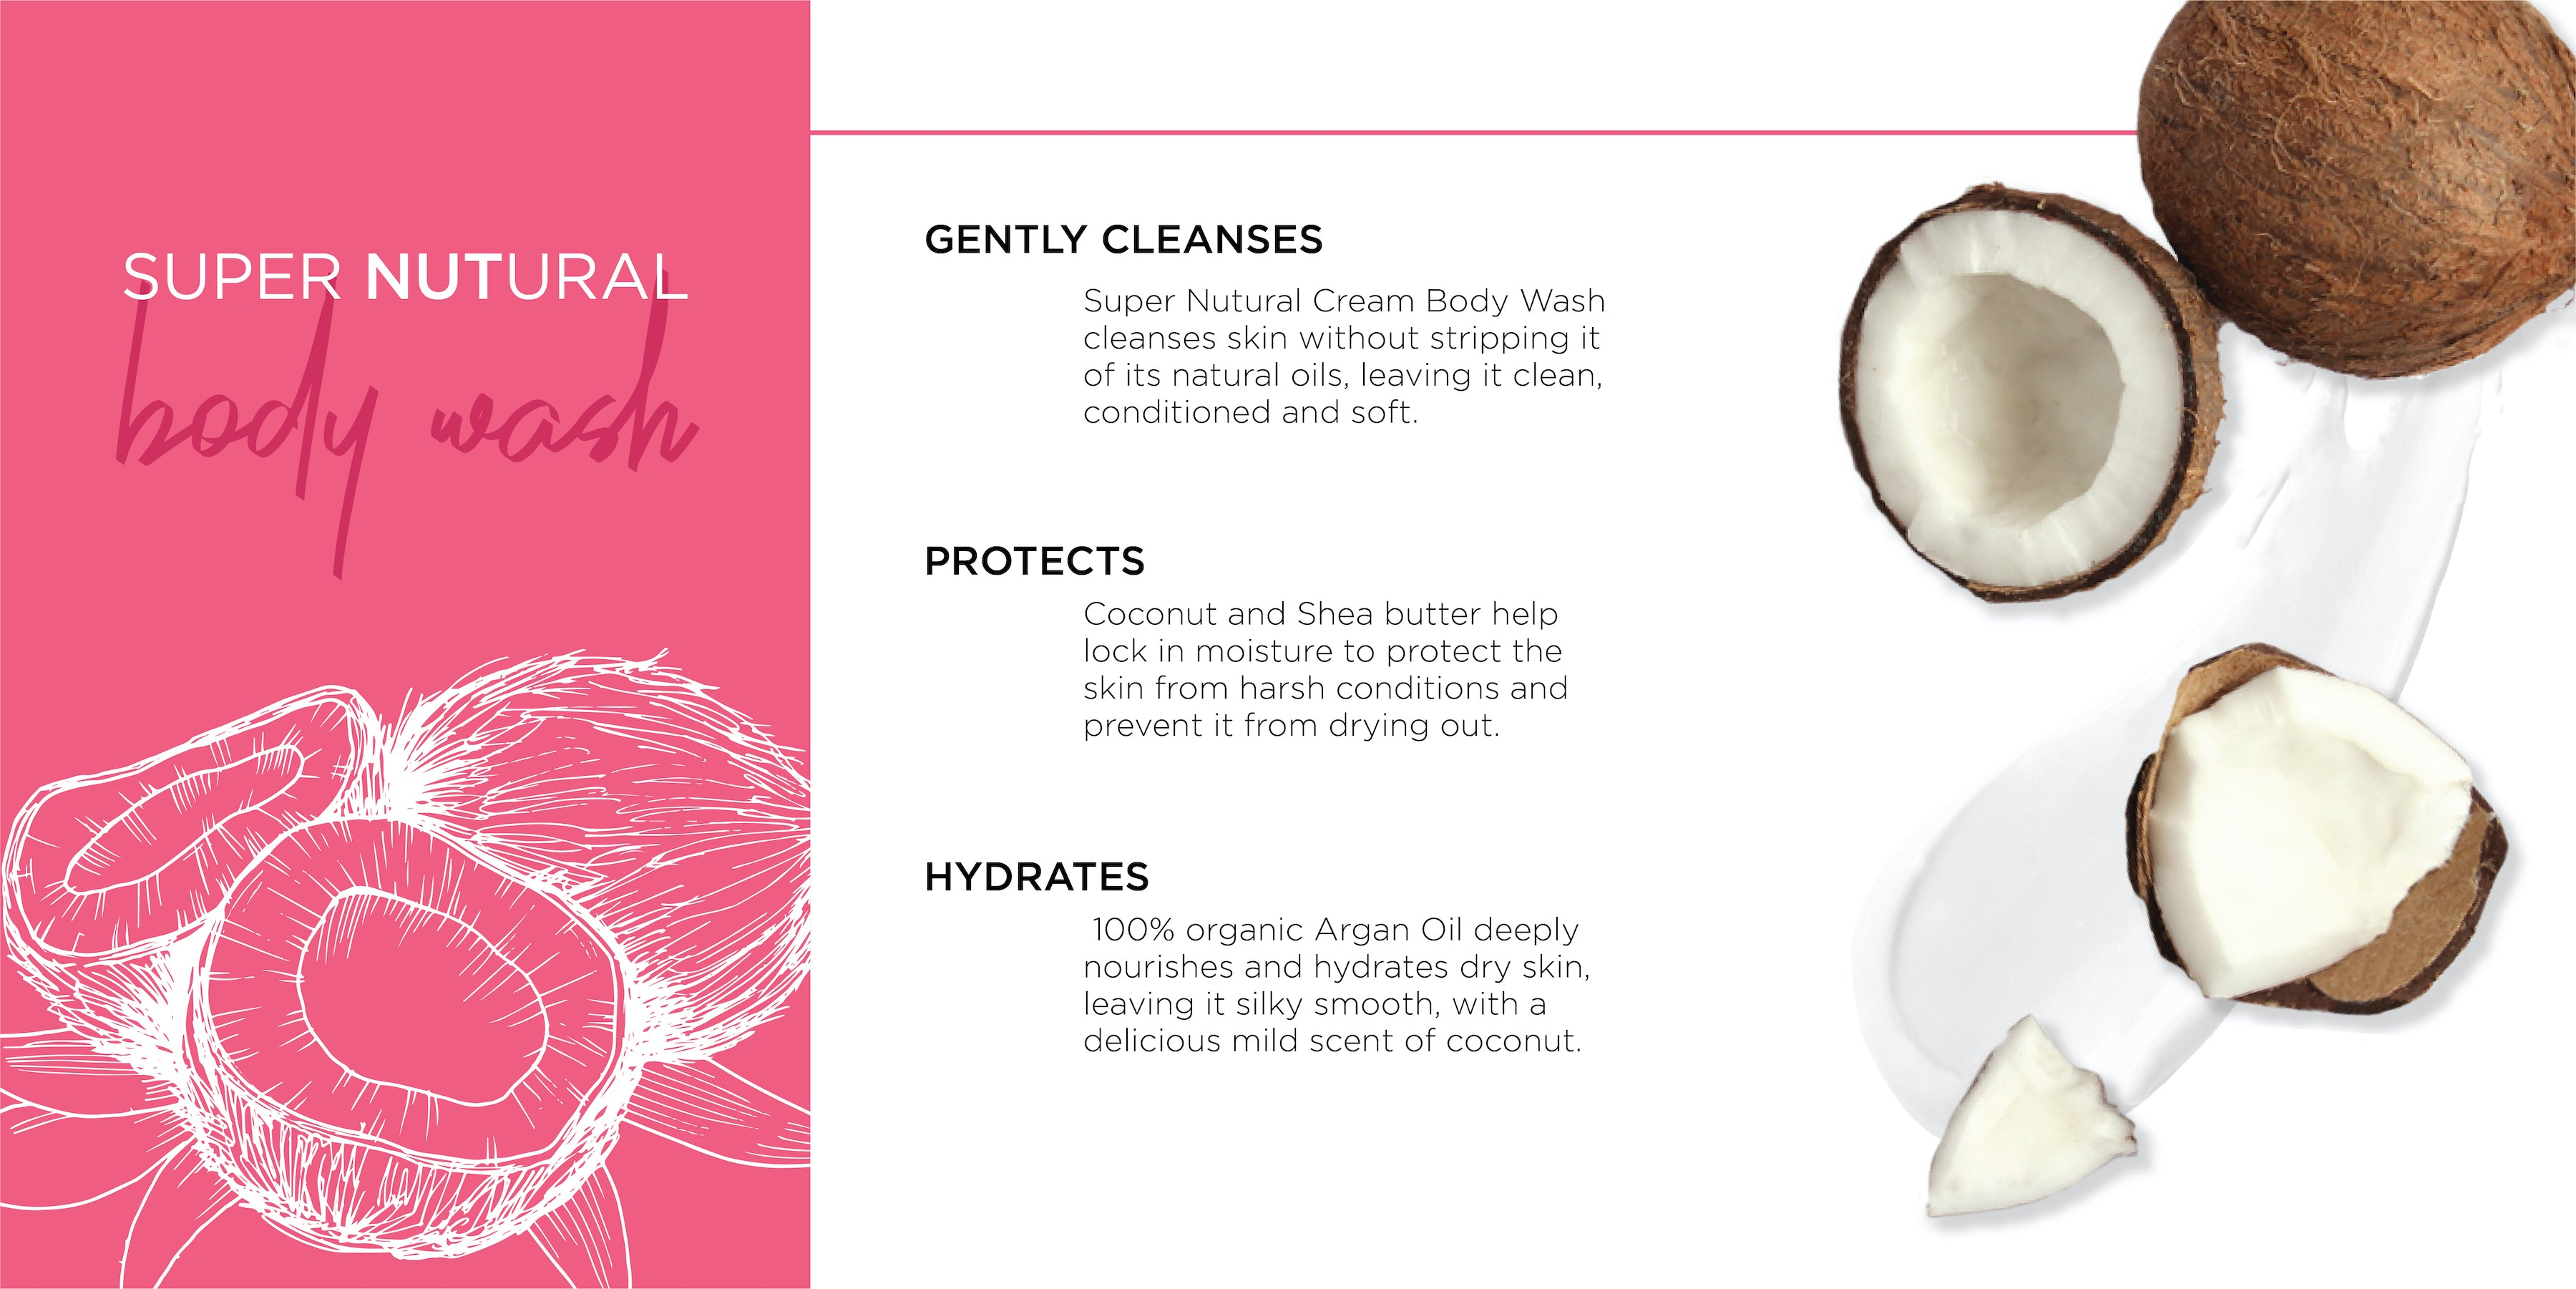 beauty nut cream body wash with argan oil and coconut oil, 250ml | cruelty-free